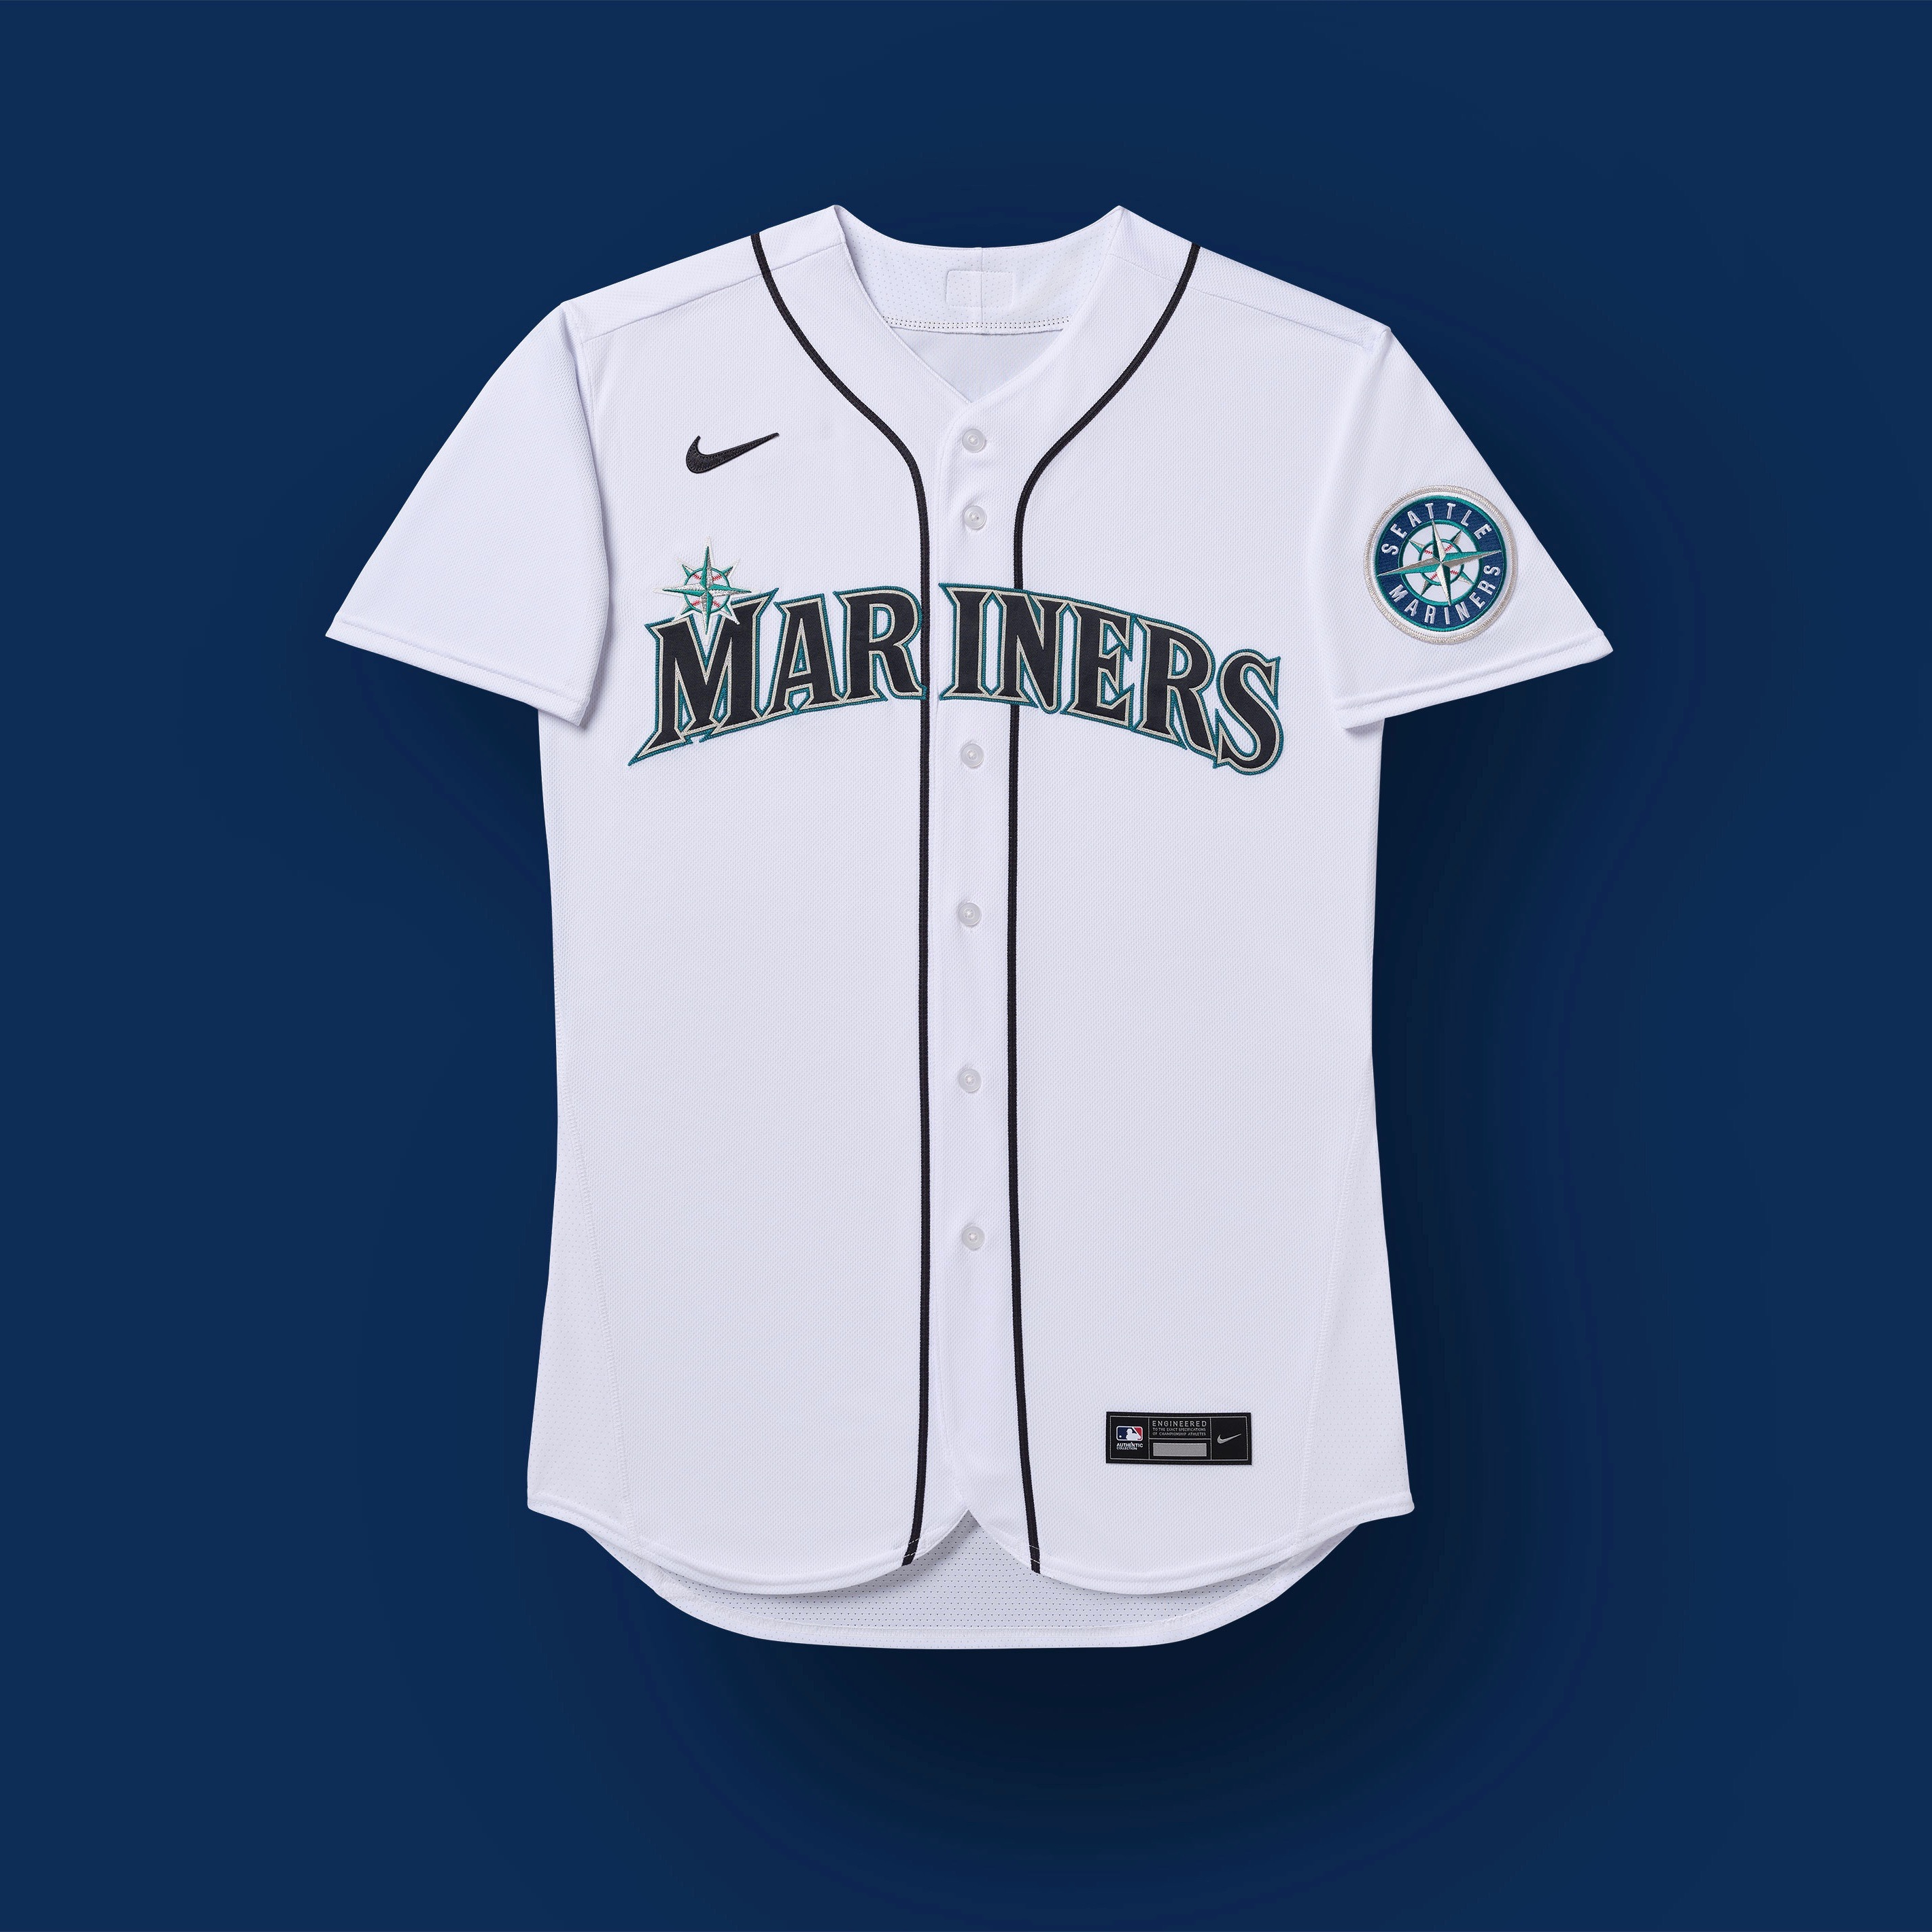 seattle mariners 2020 uniforms